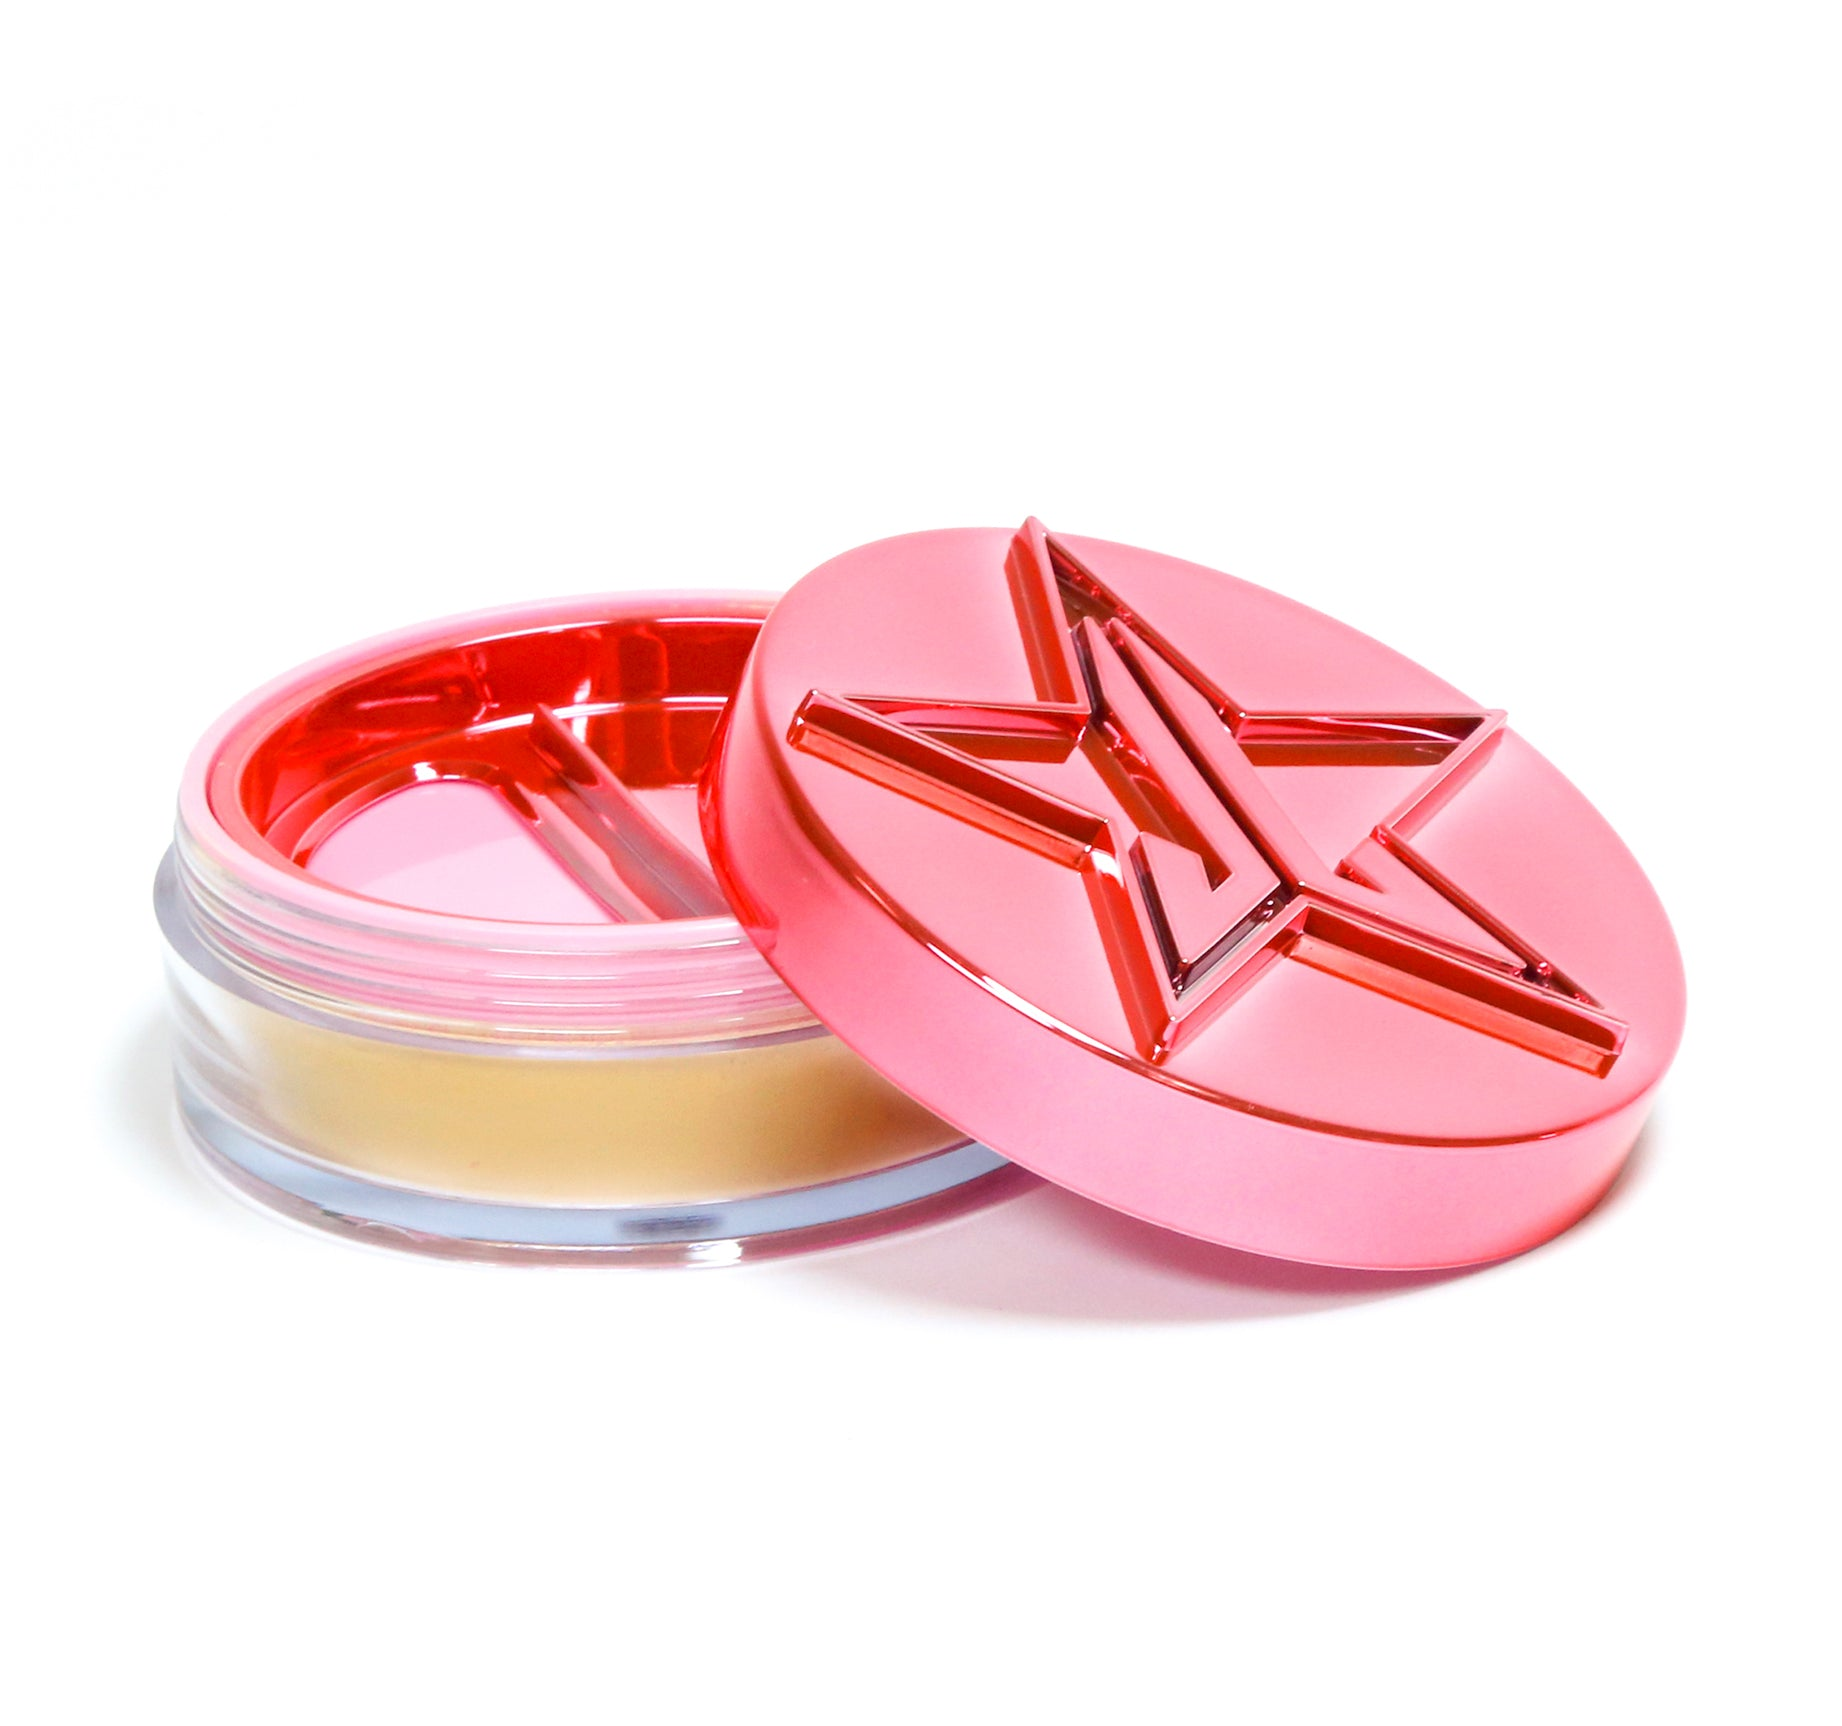 MAGIC STAR SETTING POWDER™ - TOPAZ, view larger image